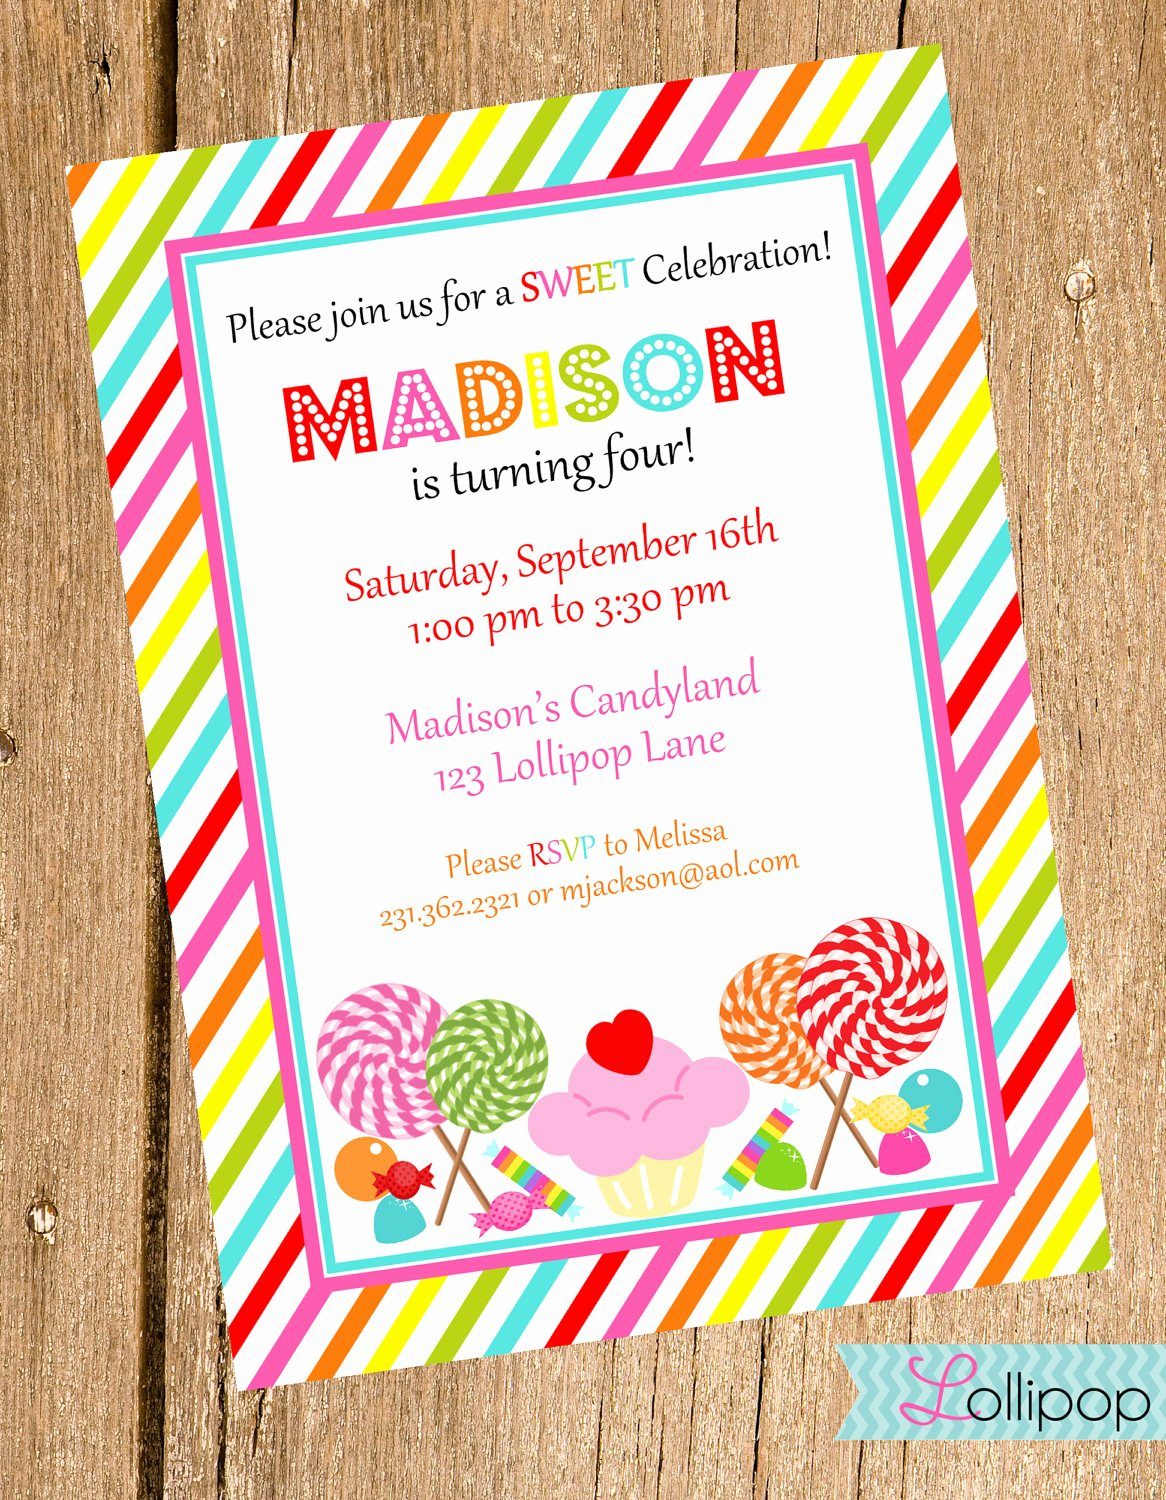 Candyland Birthday Party Invitations Luxury Candy Printable Birthday Invitation Sweet Treats by